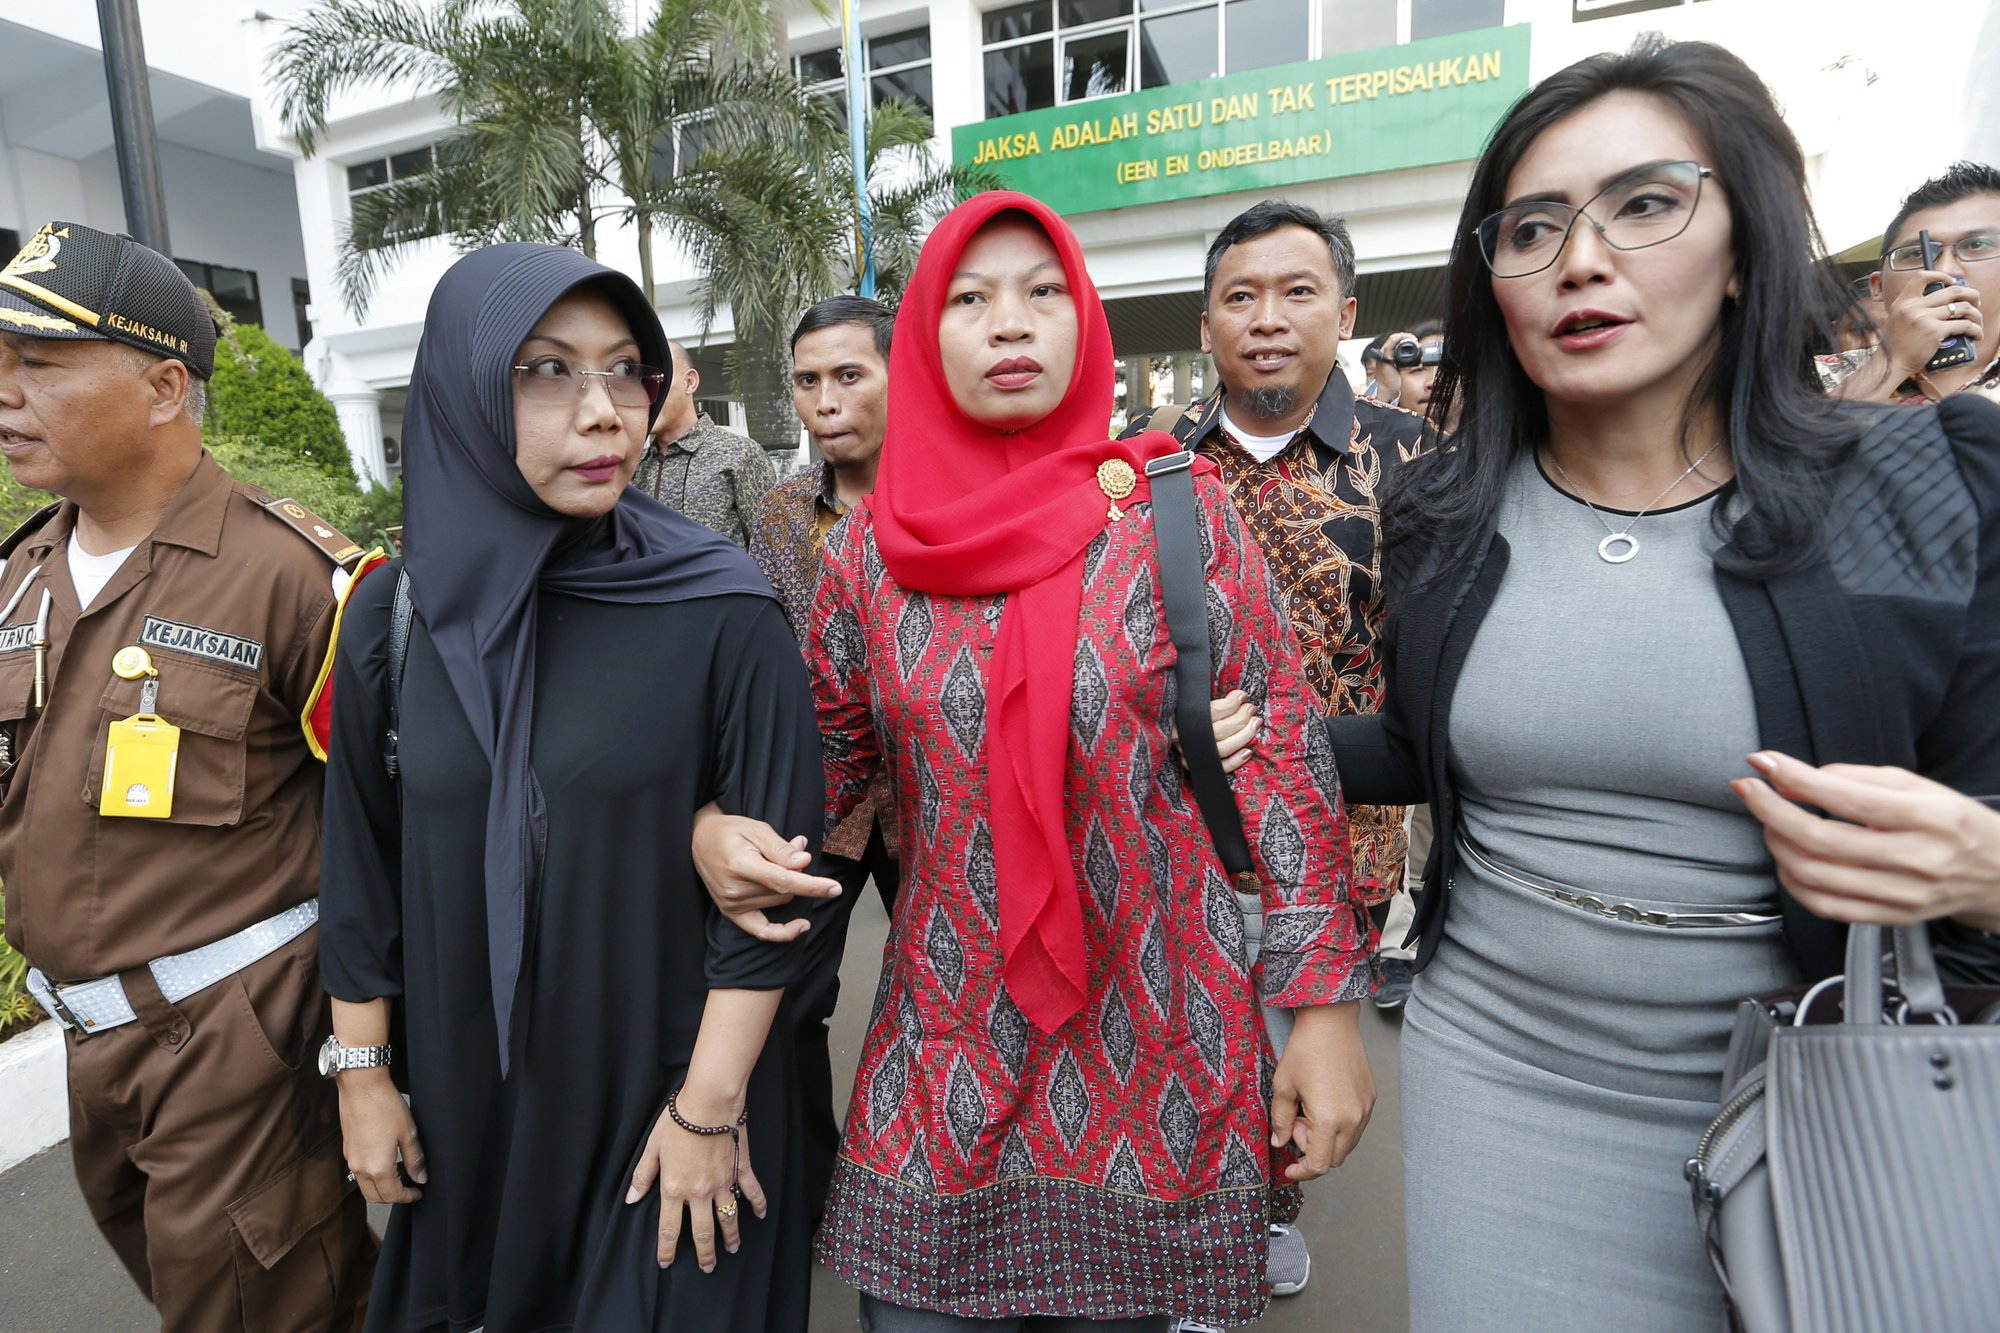 Indonesian who recorded her harasser gets reprieve from jail